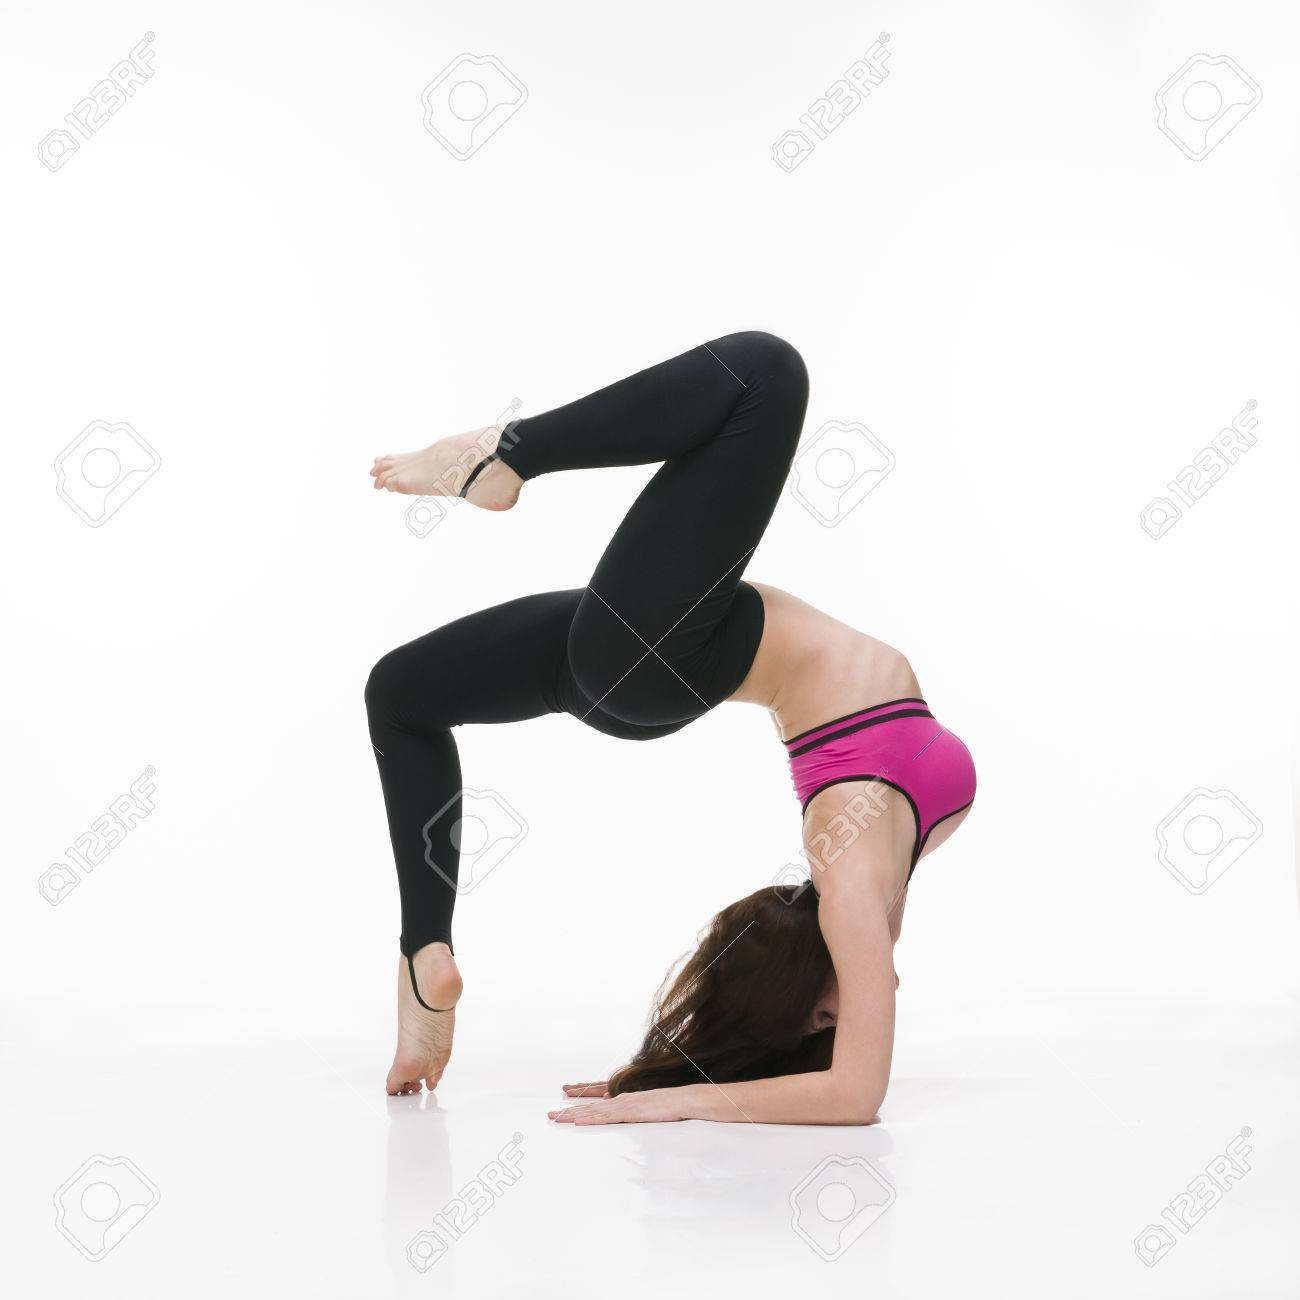 94686f8715 Stock Photo - Young beautiful caucasian woman in yoga pose in studio on  white background. Sexy female body